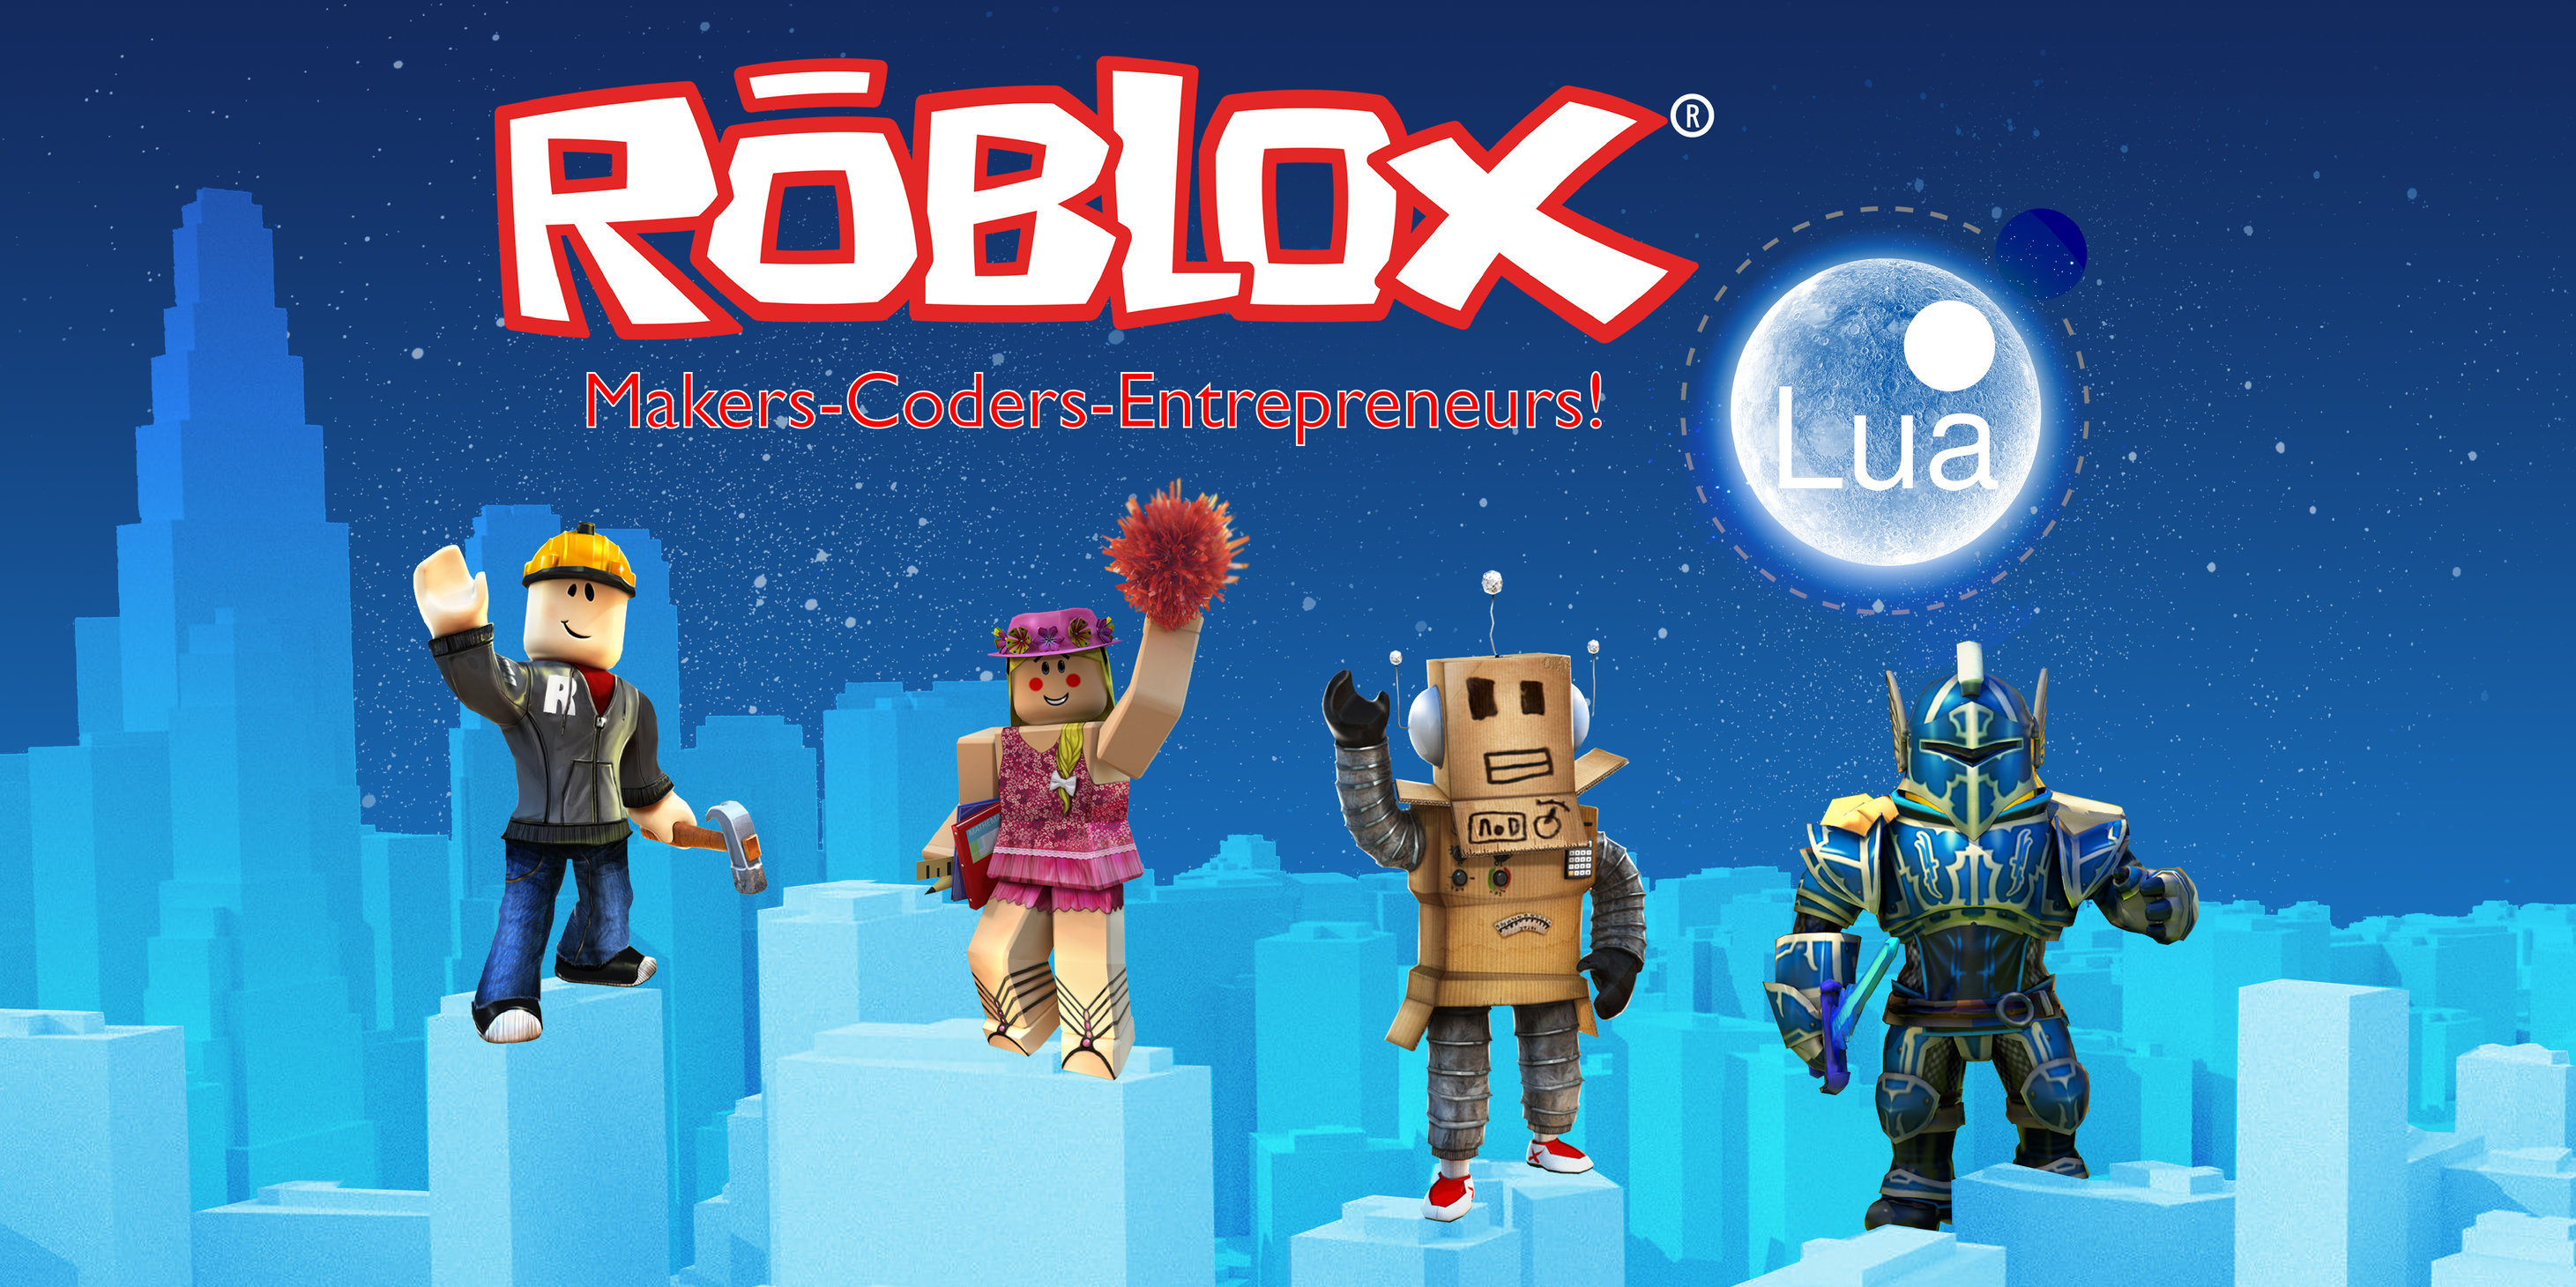 Roblox Makers-Coders-Entrepreneurs